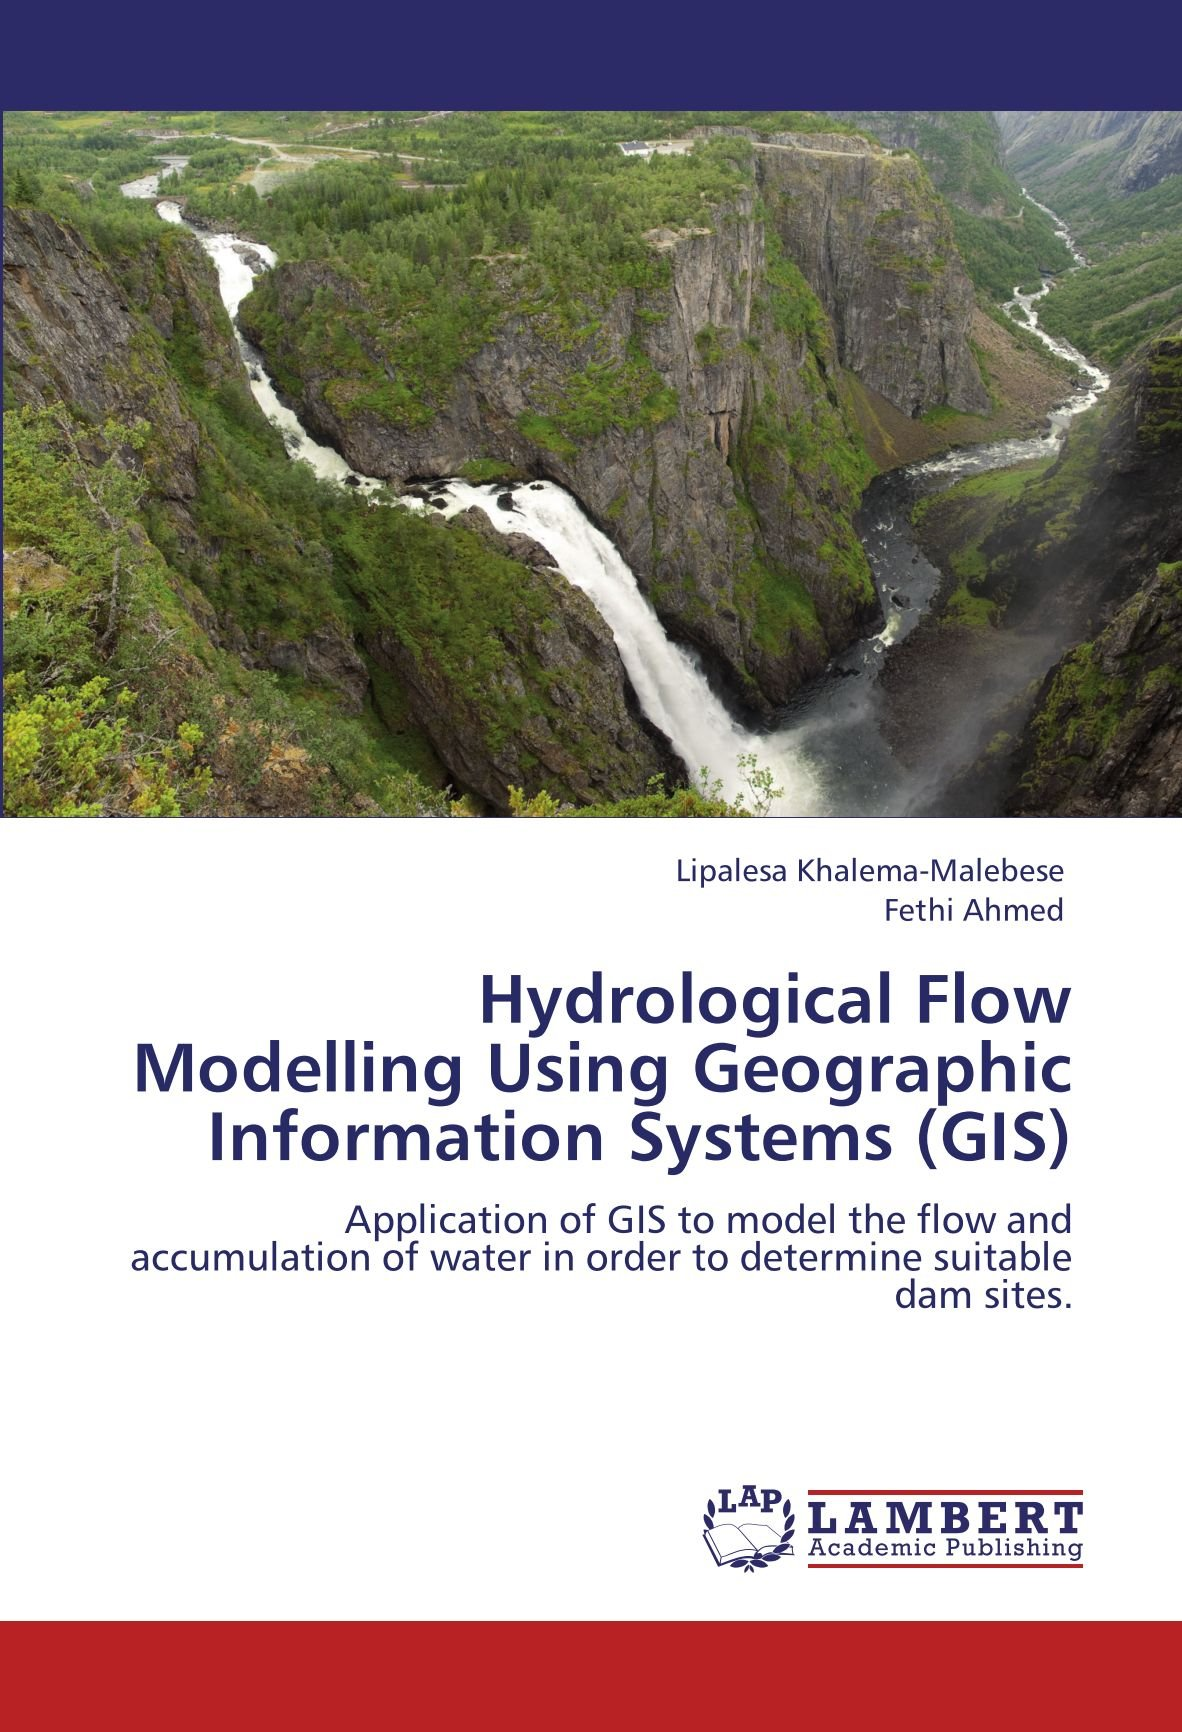 Hydrological Flow Modelling Using Geographic Information Systems (GIS): Application of GIS to model the flow and accumulation of water in order to determine suitable dam sites. PDF